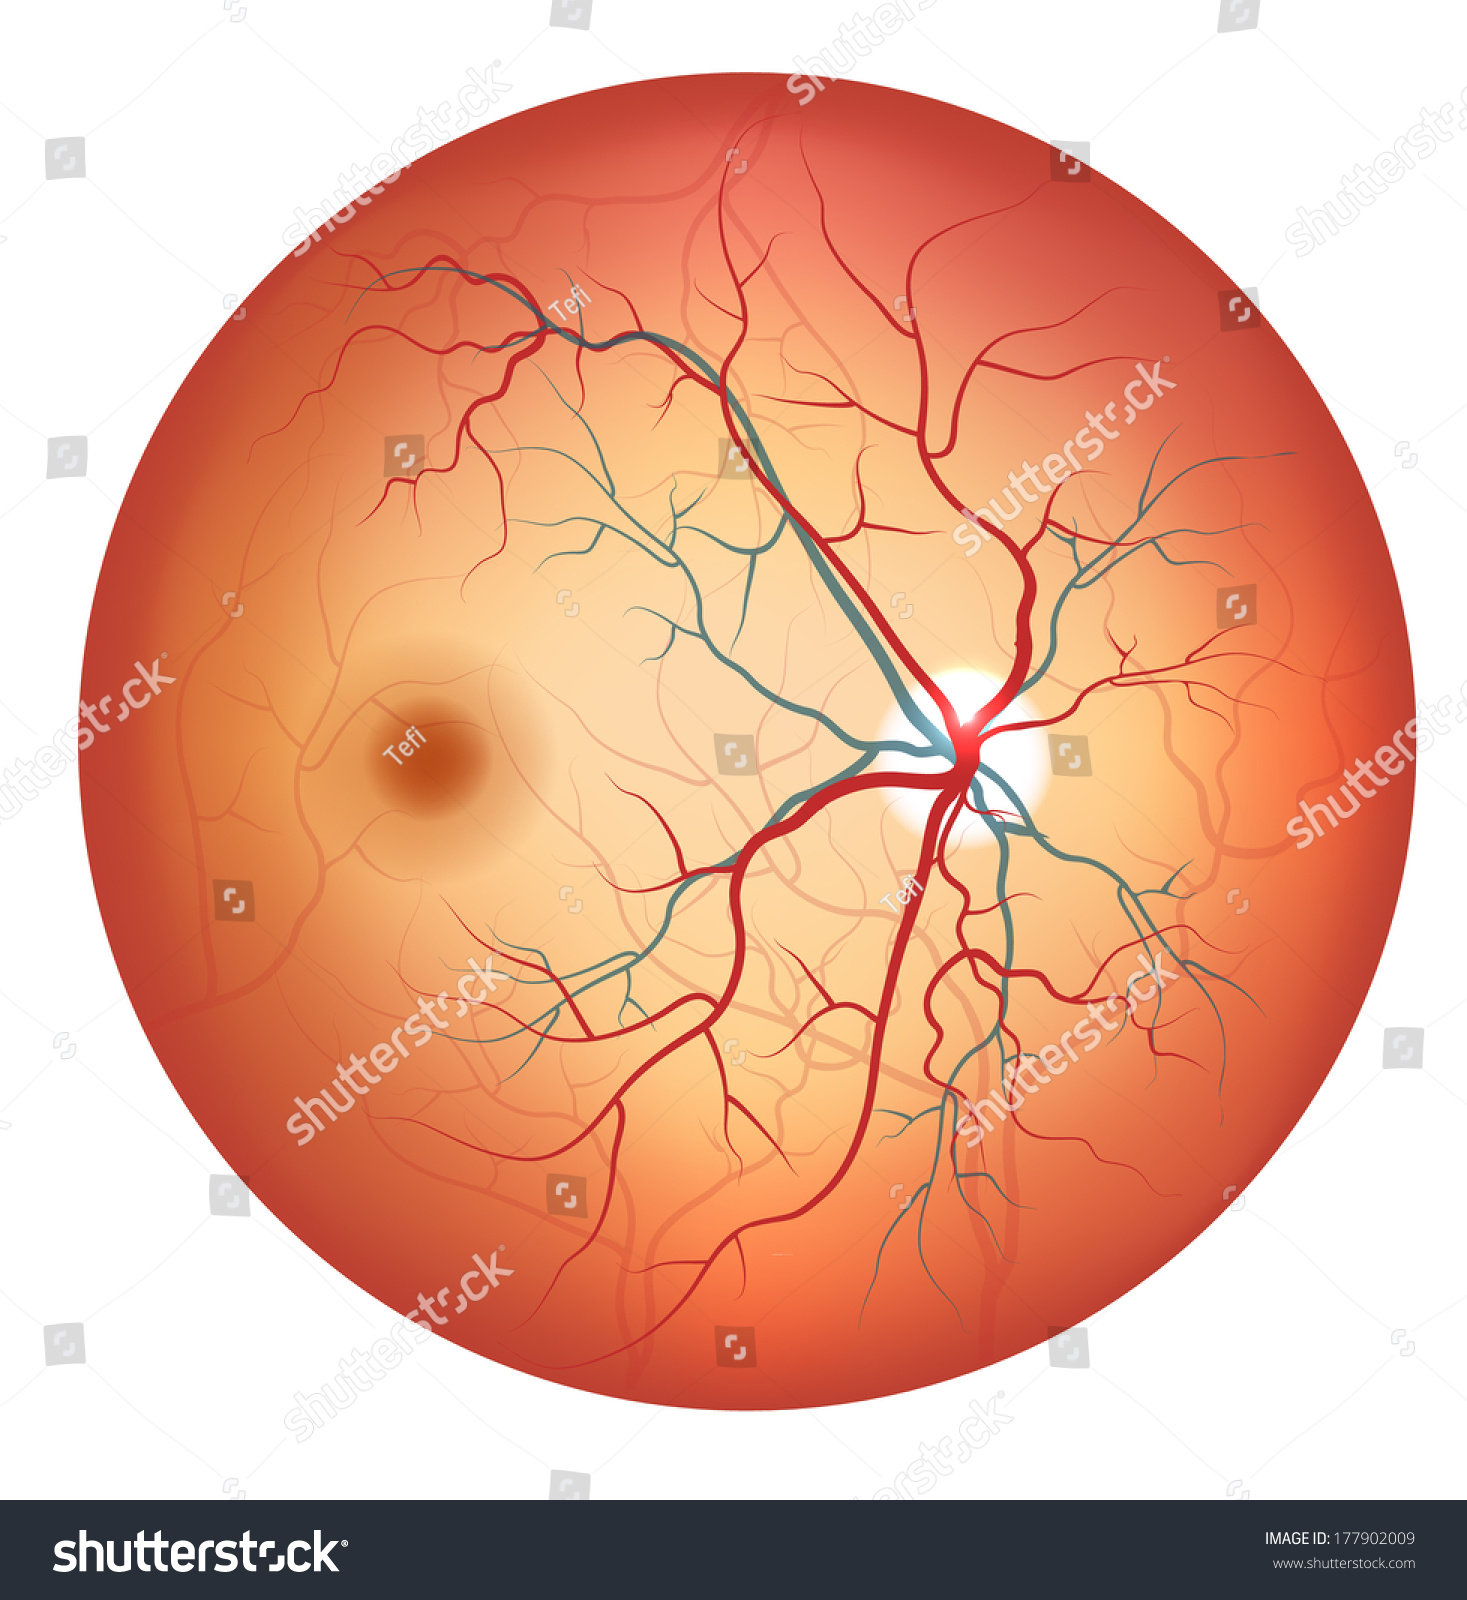 Human Eye Anatomy Retina Optic Disc Stock Photo Photo Vector